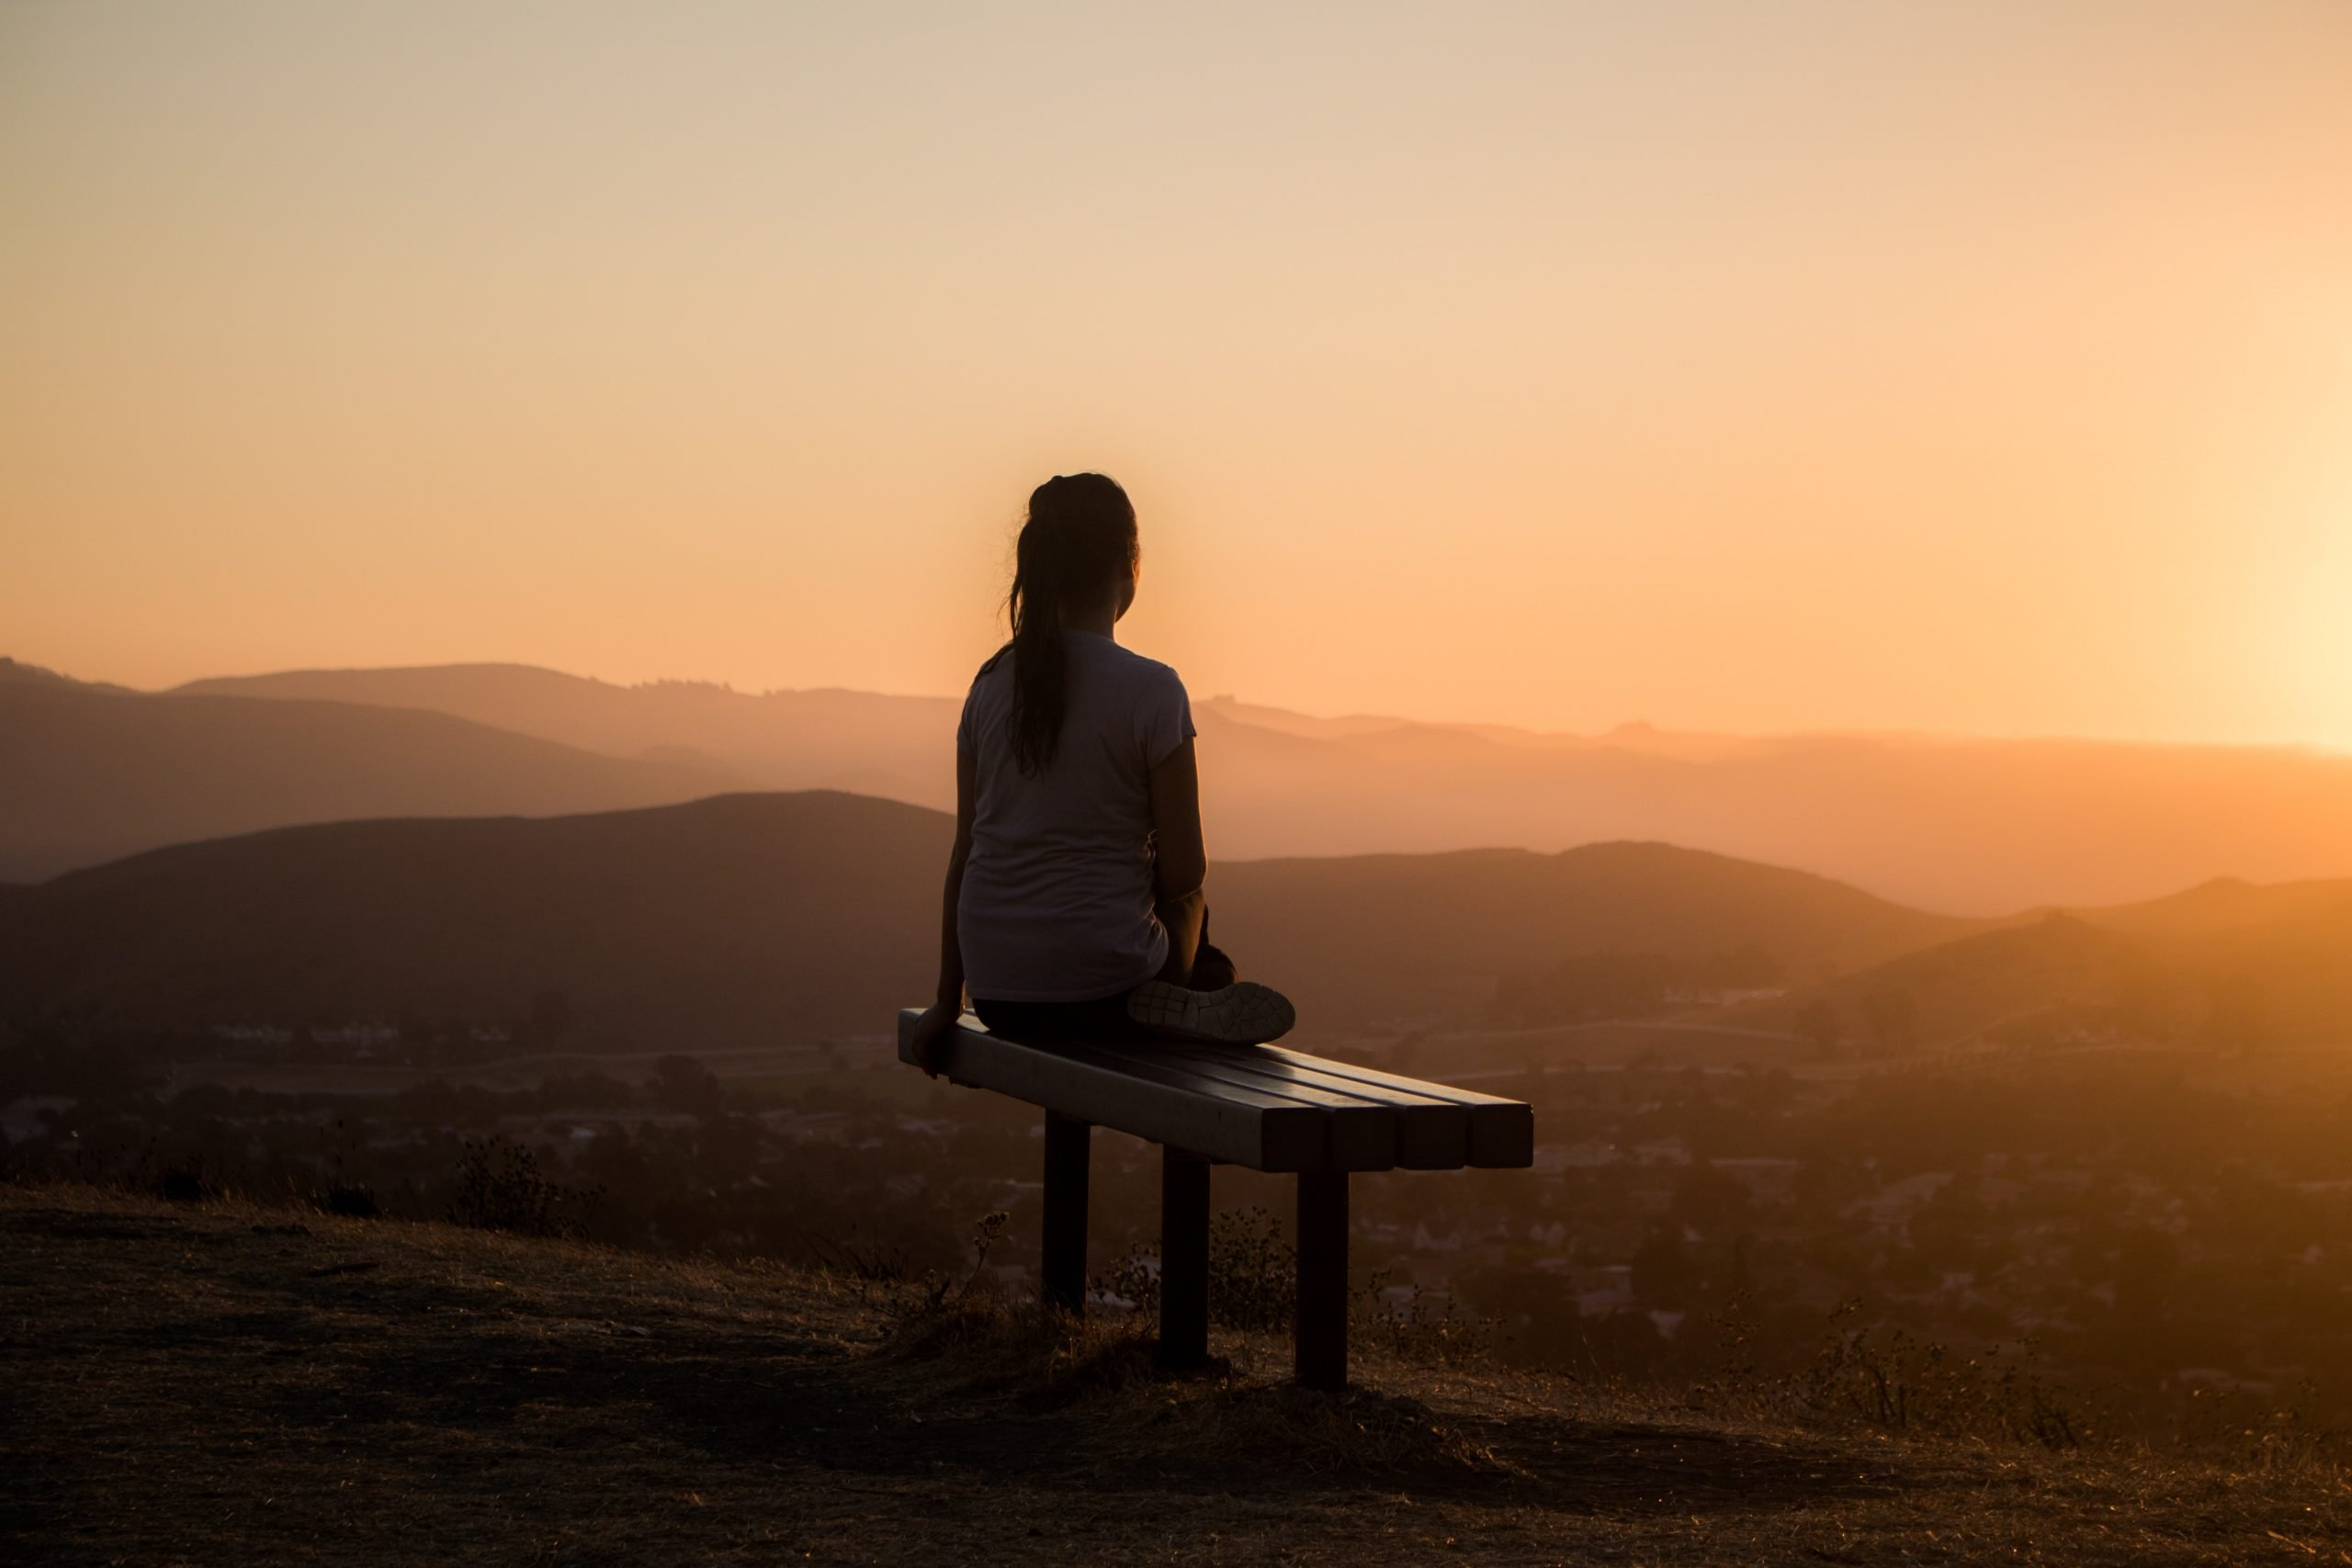 Woman sitting on a bench overlooking a sunrise in the mountains